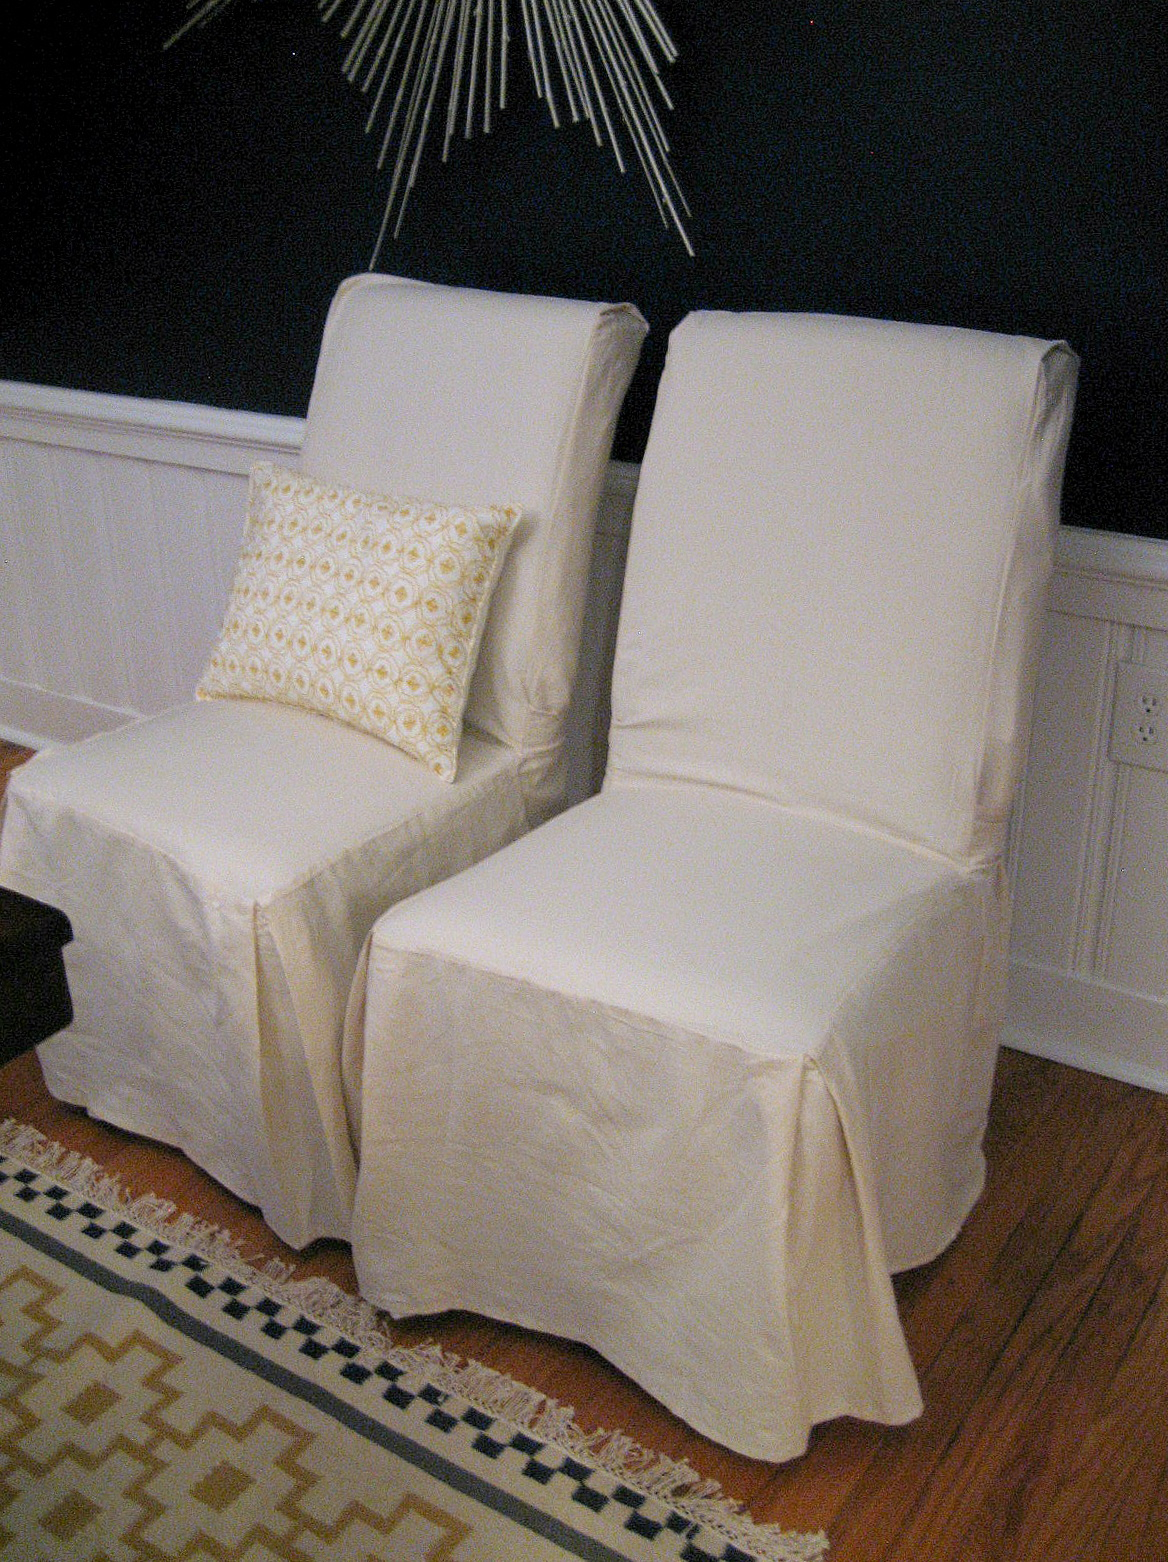 Slipcovers For Chairs Diy